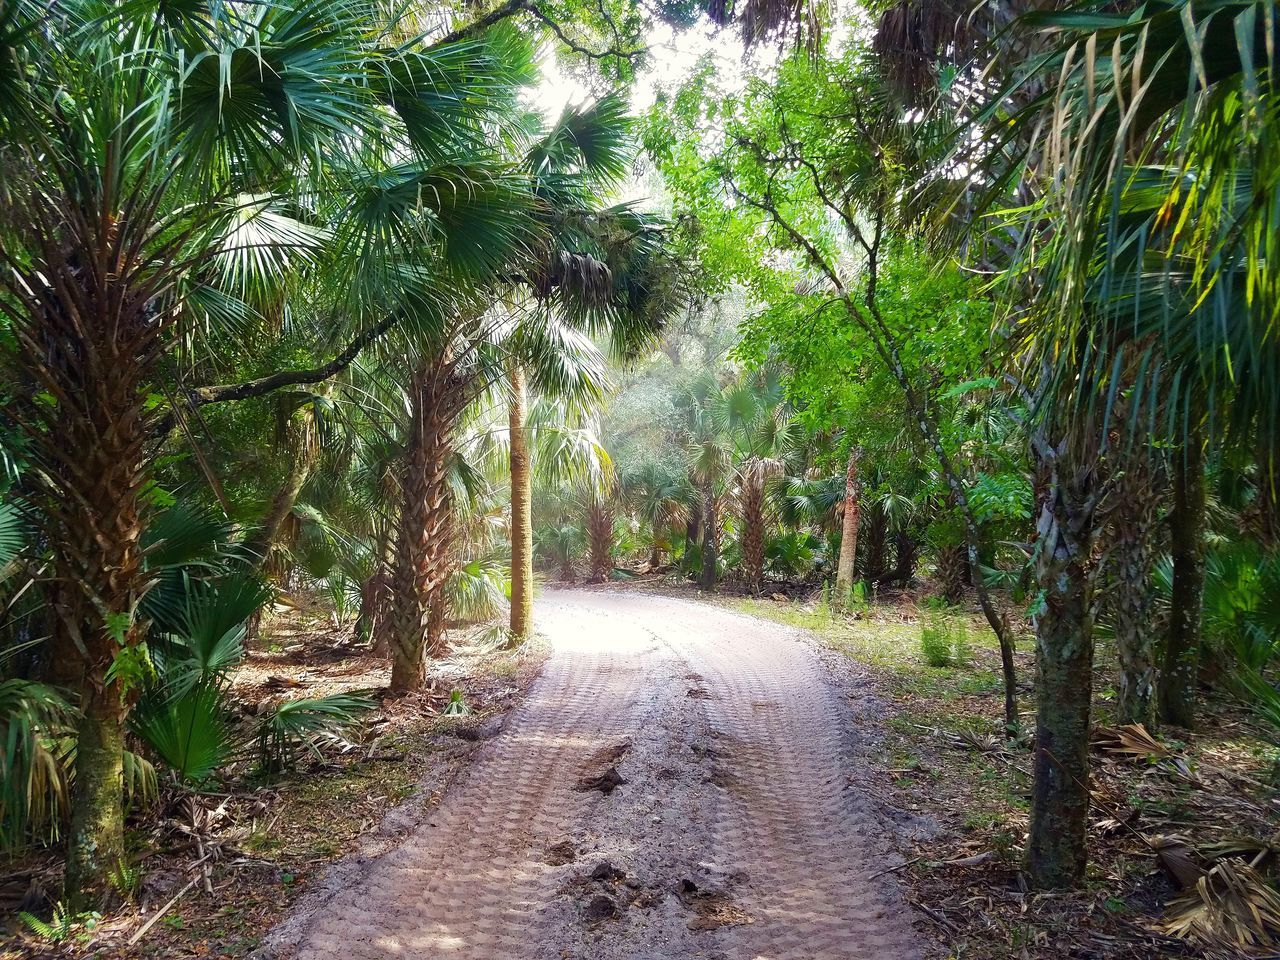 tree, the way forward, nature, tranquility, growth, beauty in nature, palm tree, no people, scenics, outdoors, landscape, day